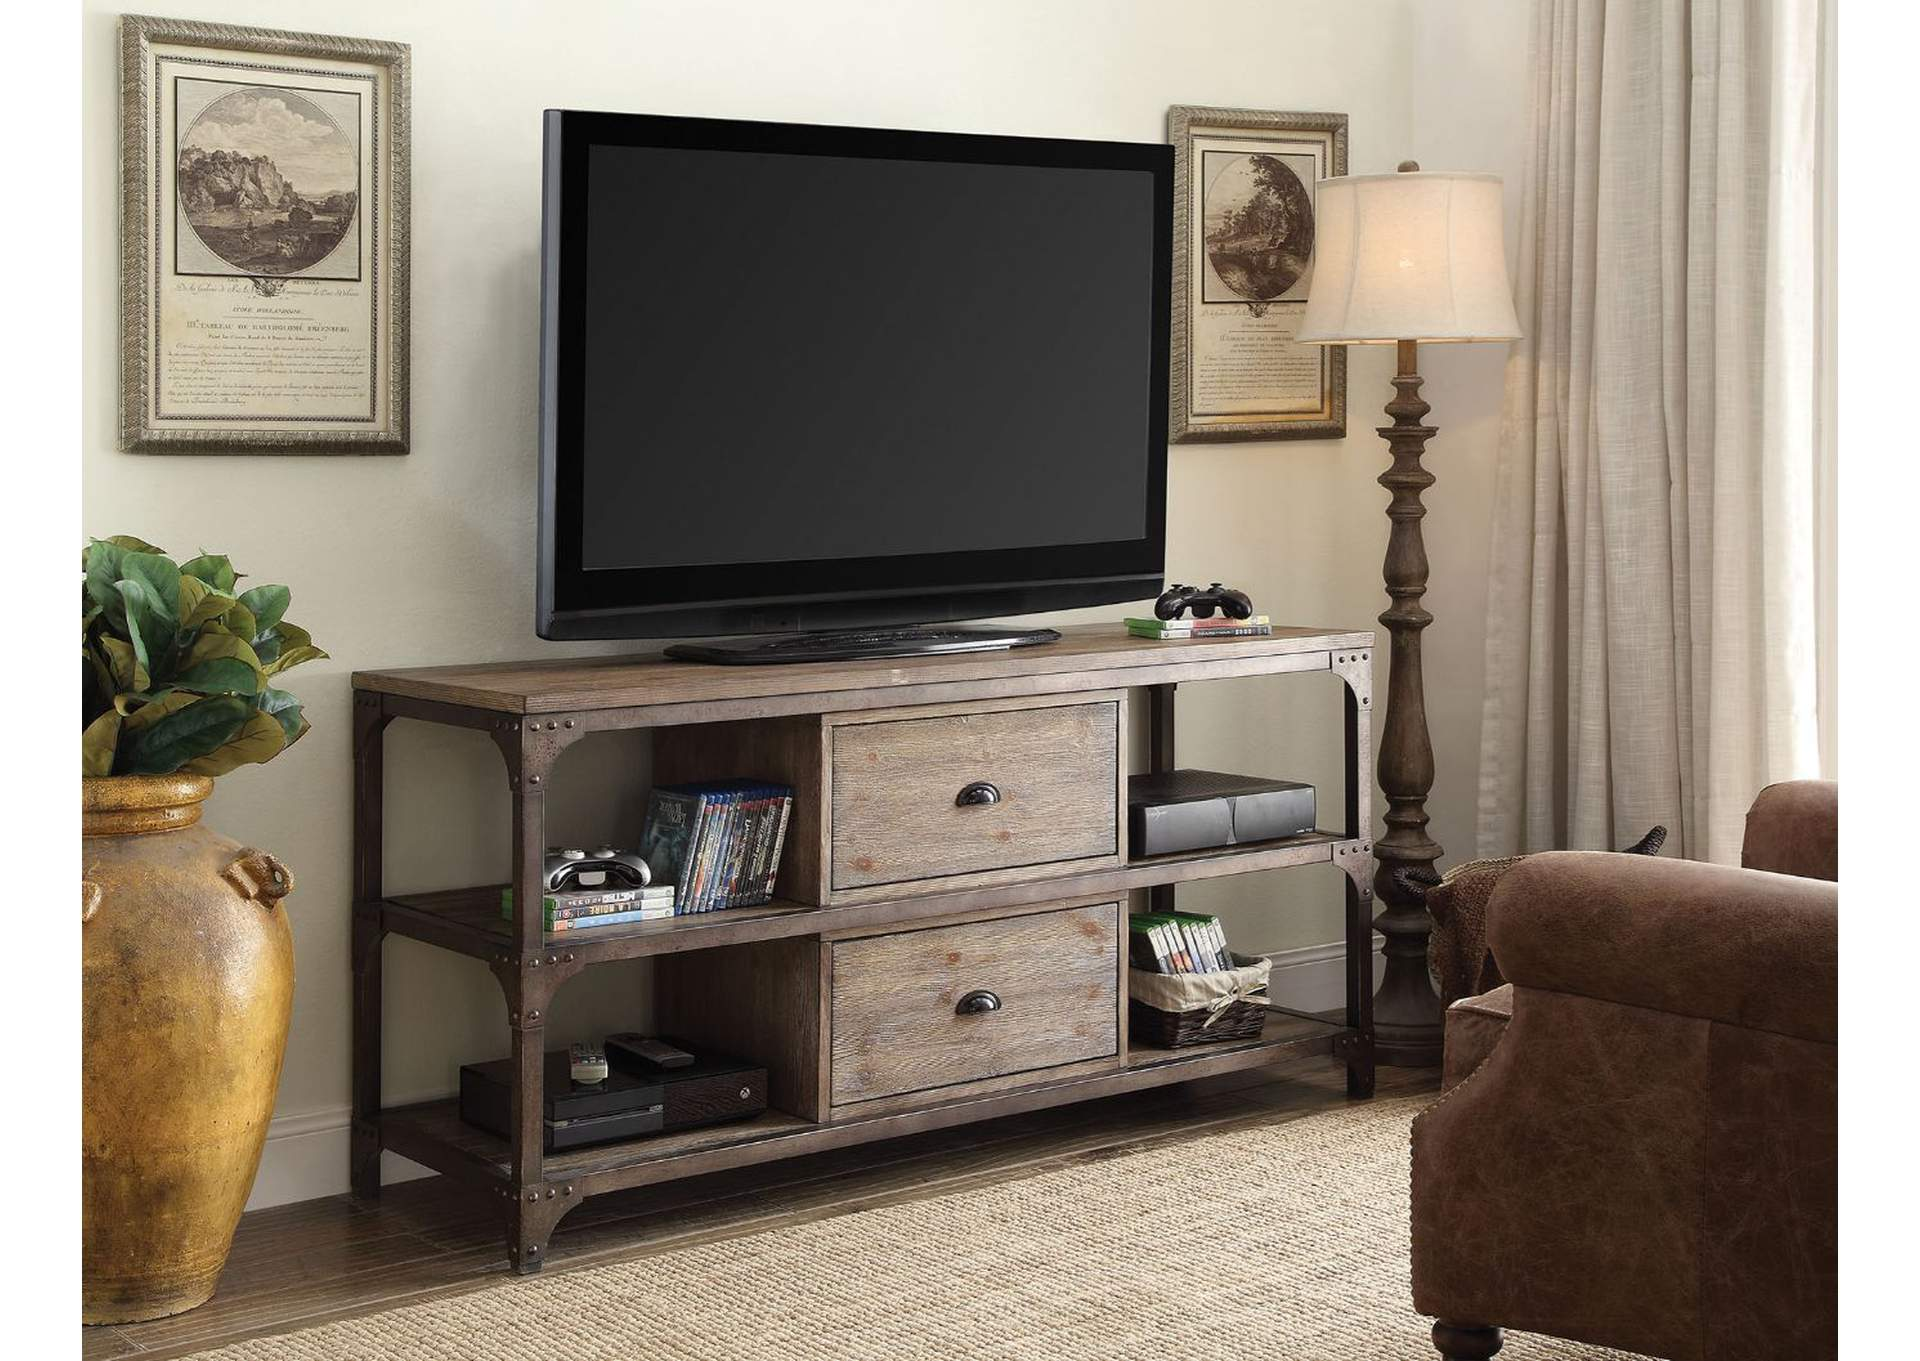 Gorden Oak/Silver TV Stand,Acme